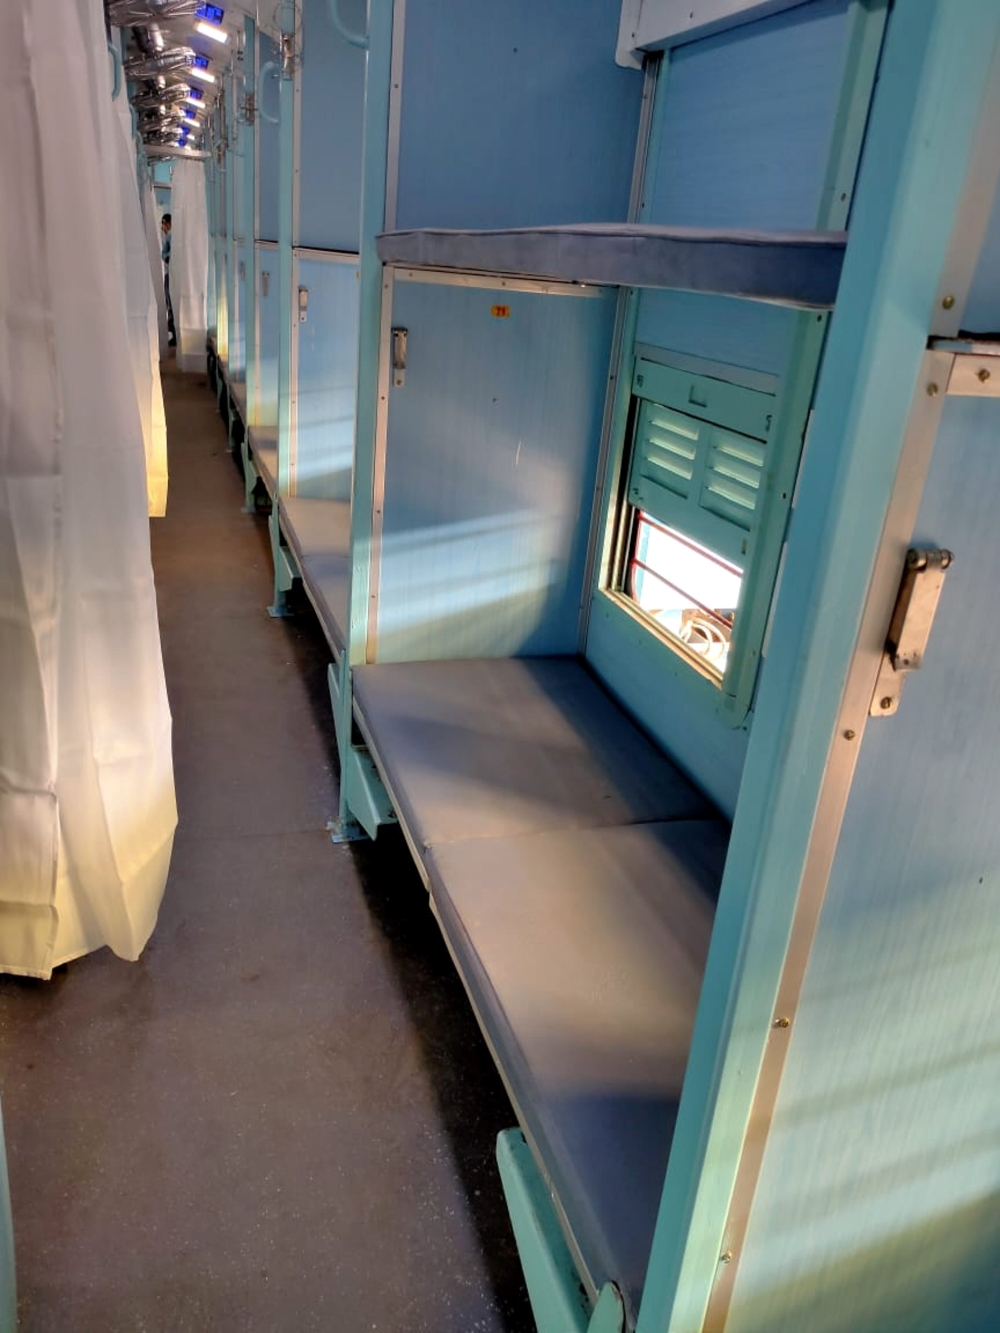 A prototype of an isolation ward for treating coronavirus patients inside non-air-conditioned train coaches, in New Delhi, Saturday, March 28, 2020.